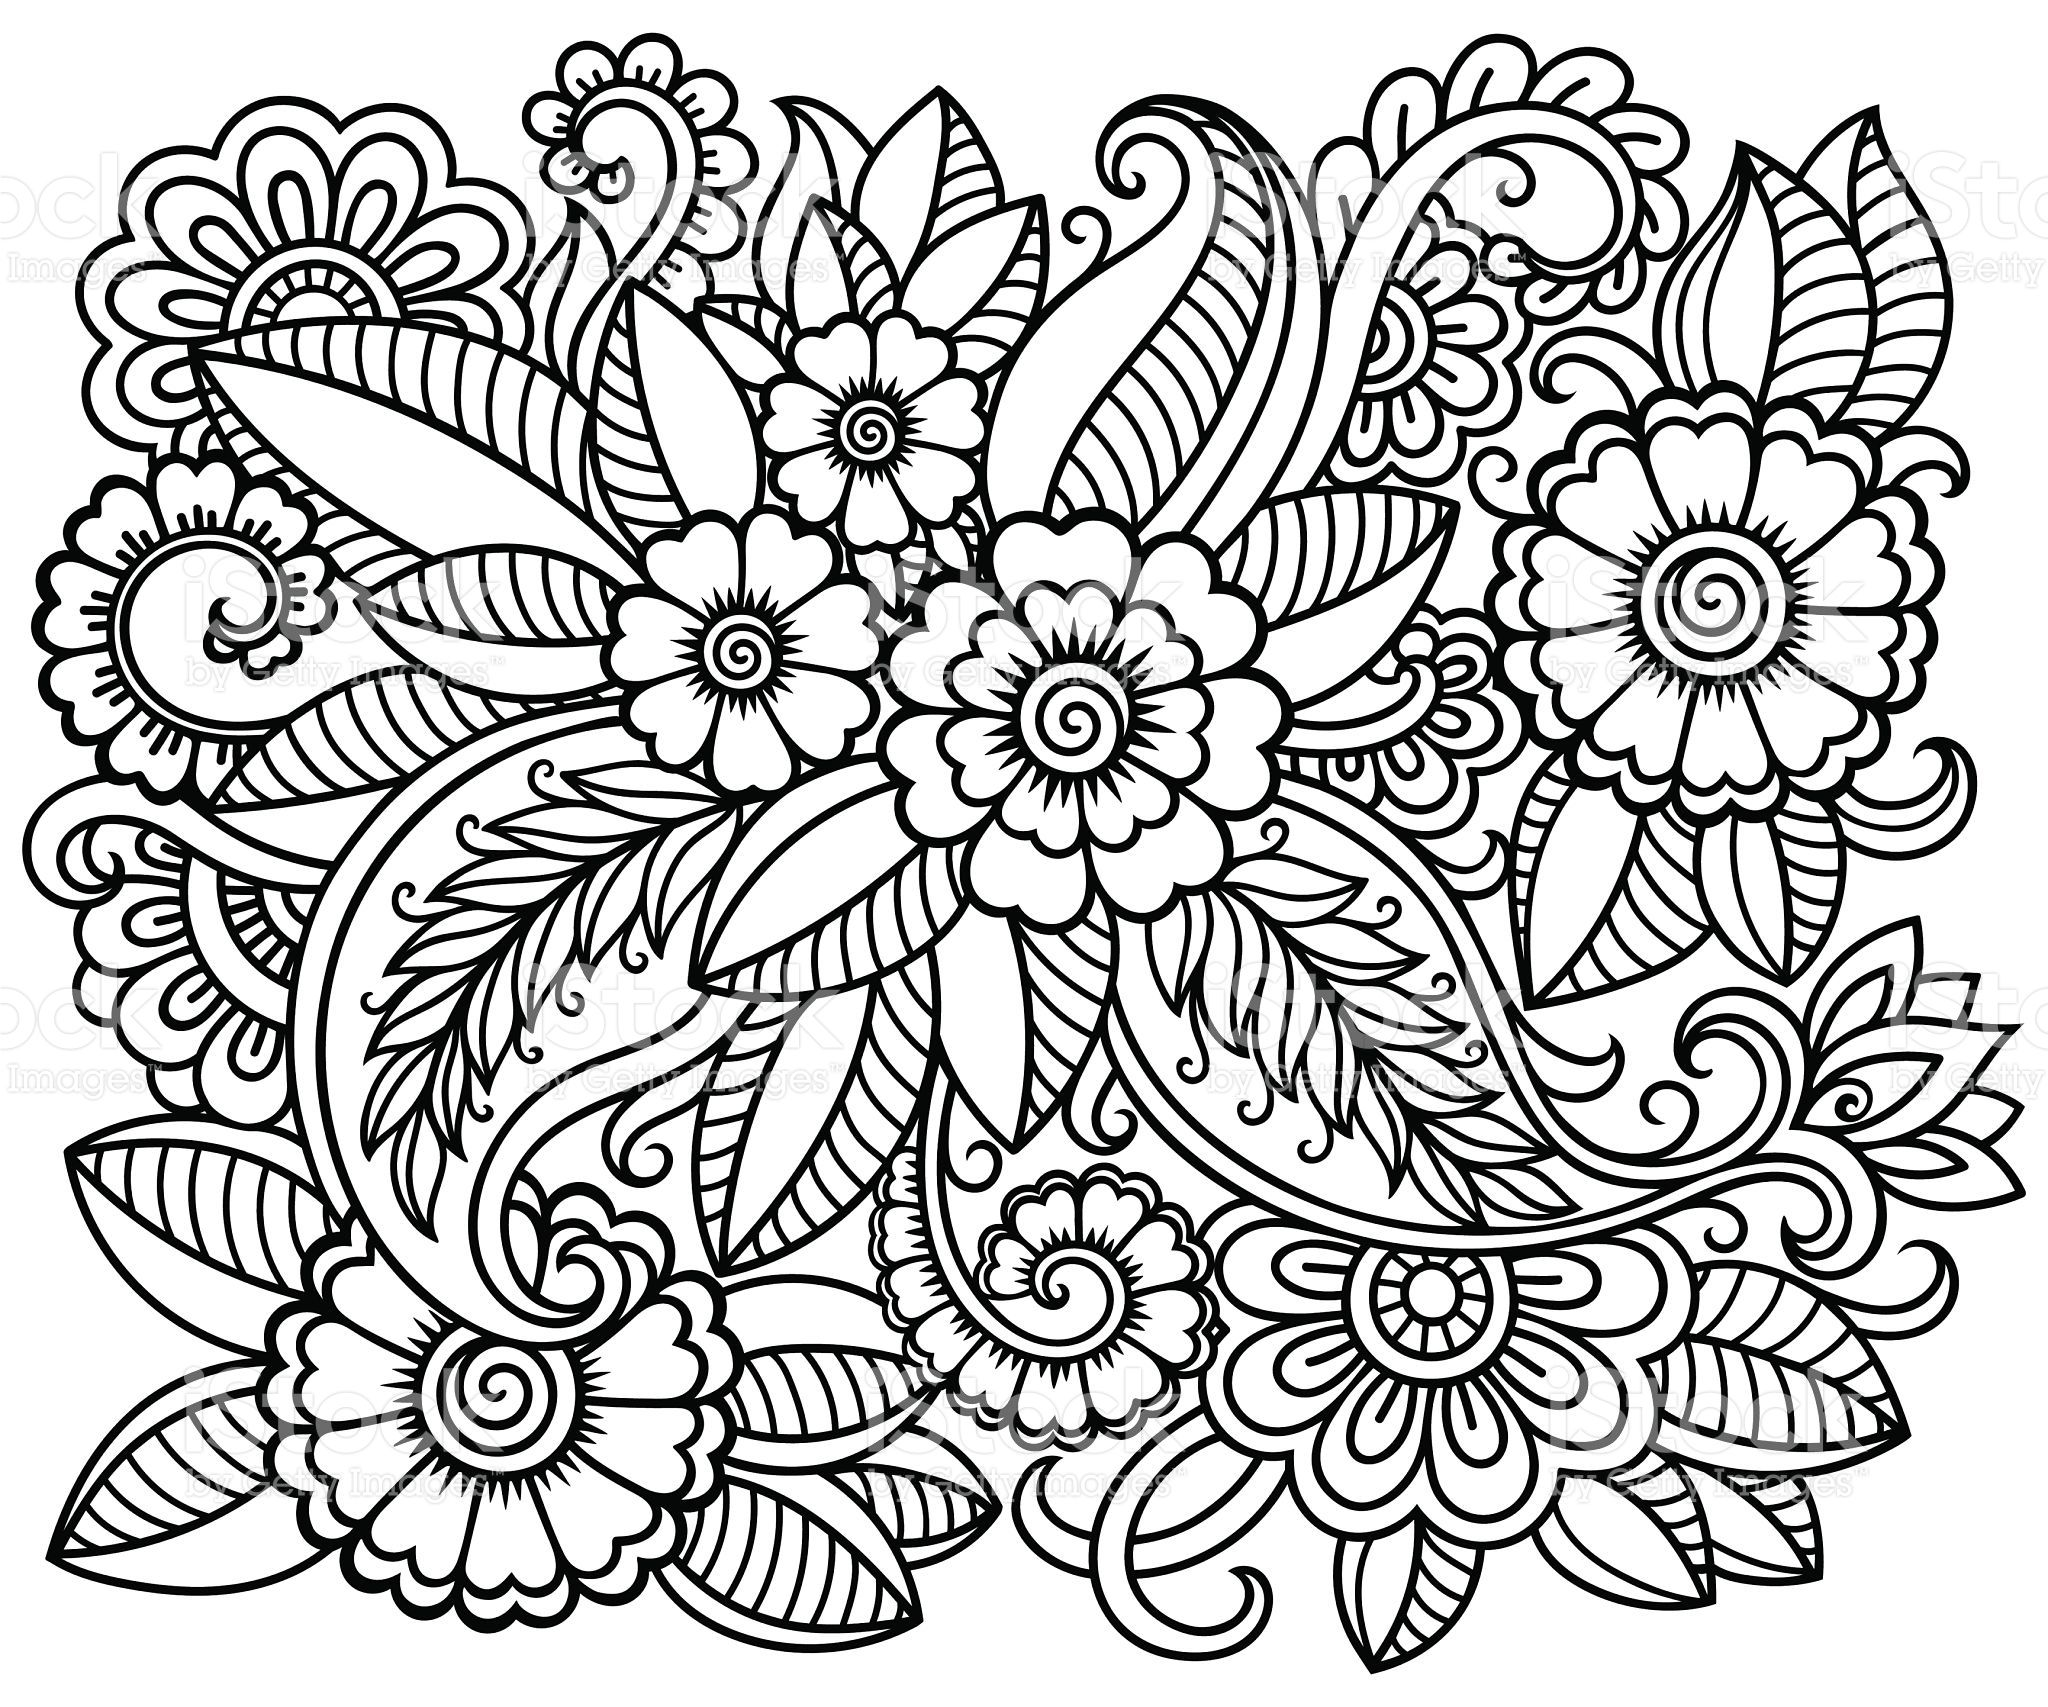 Doodle Floral Pattern For Coloring Book Vector Id583980452 2048 1707 Doodle Patterns Coloring Books Flower Coloring Pages